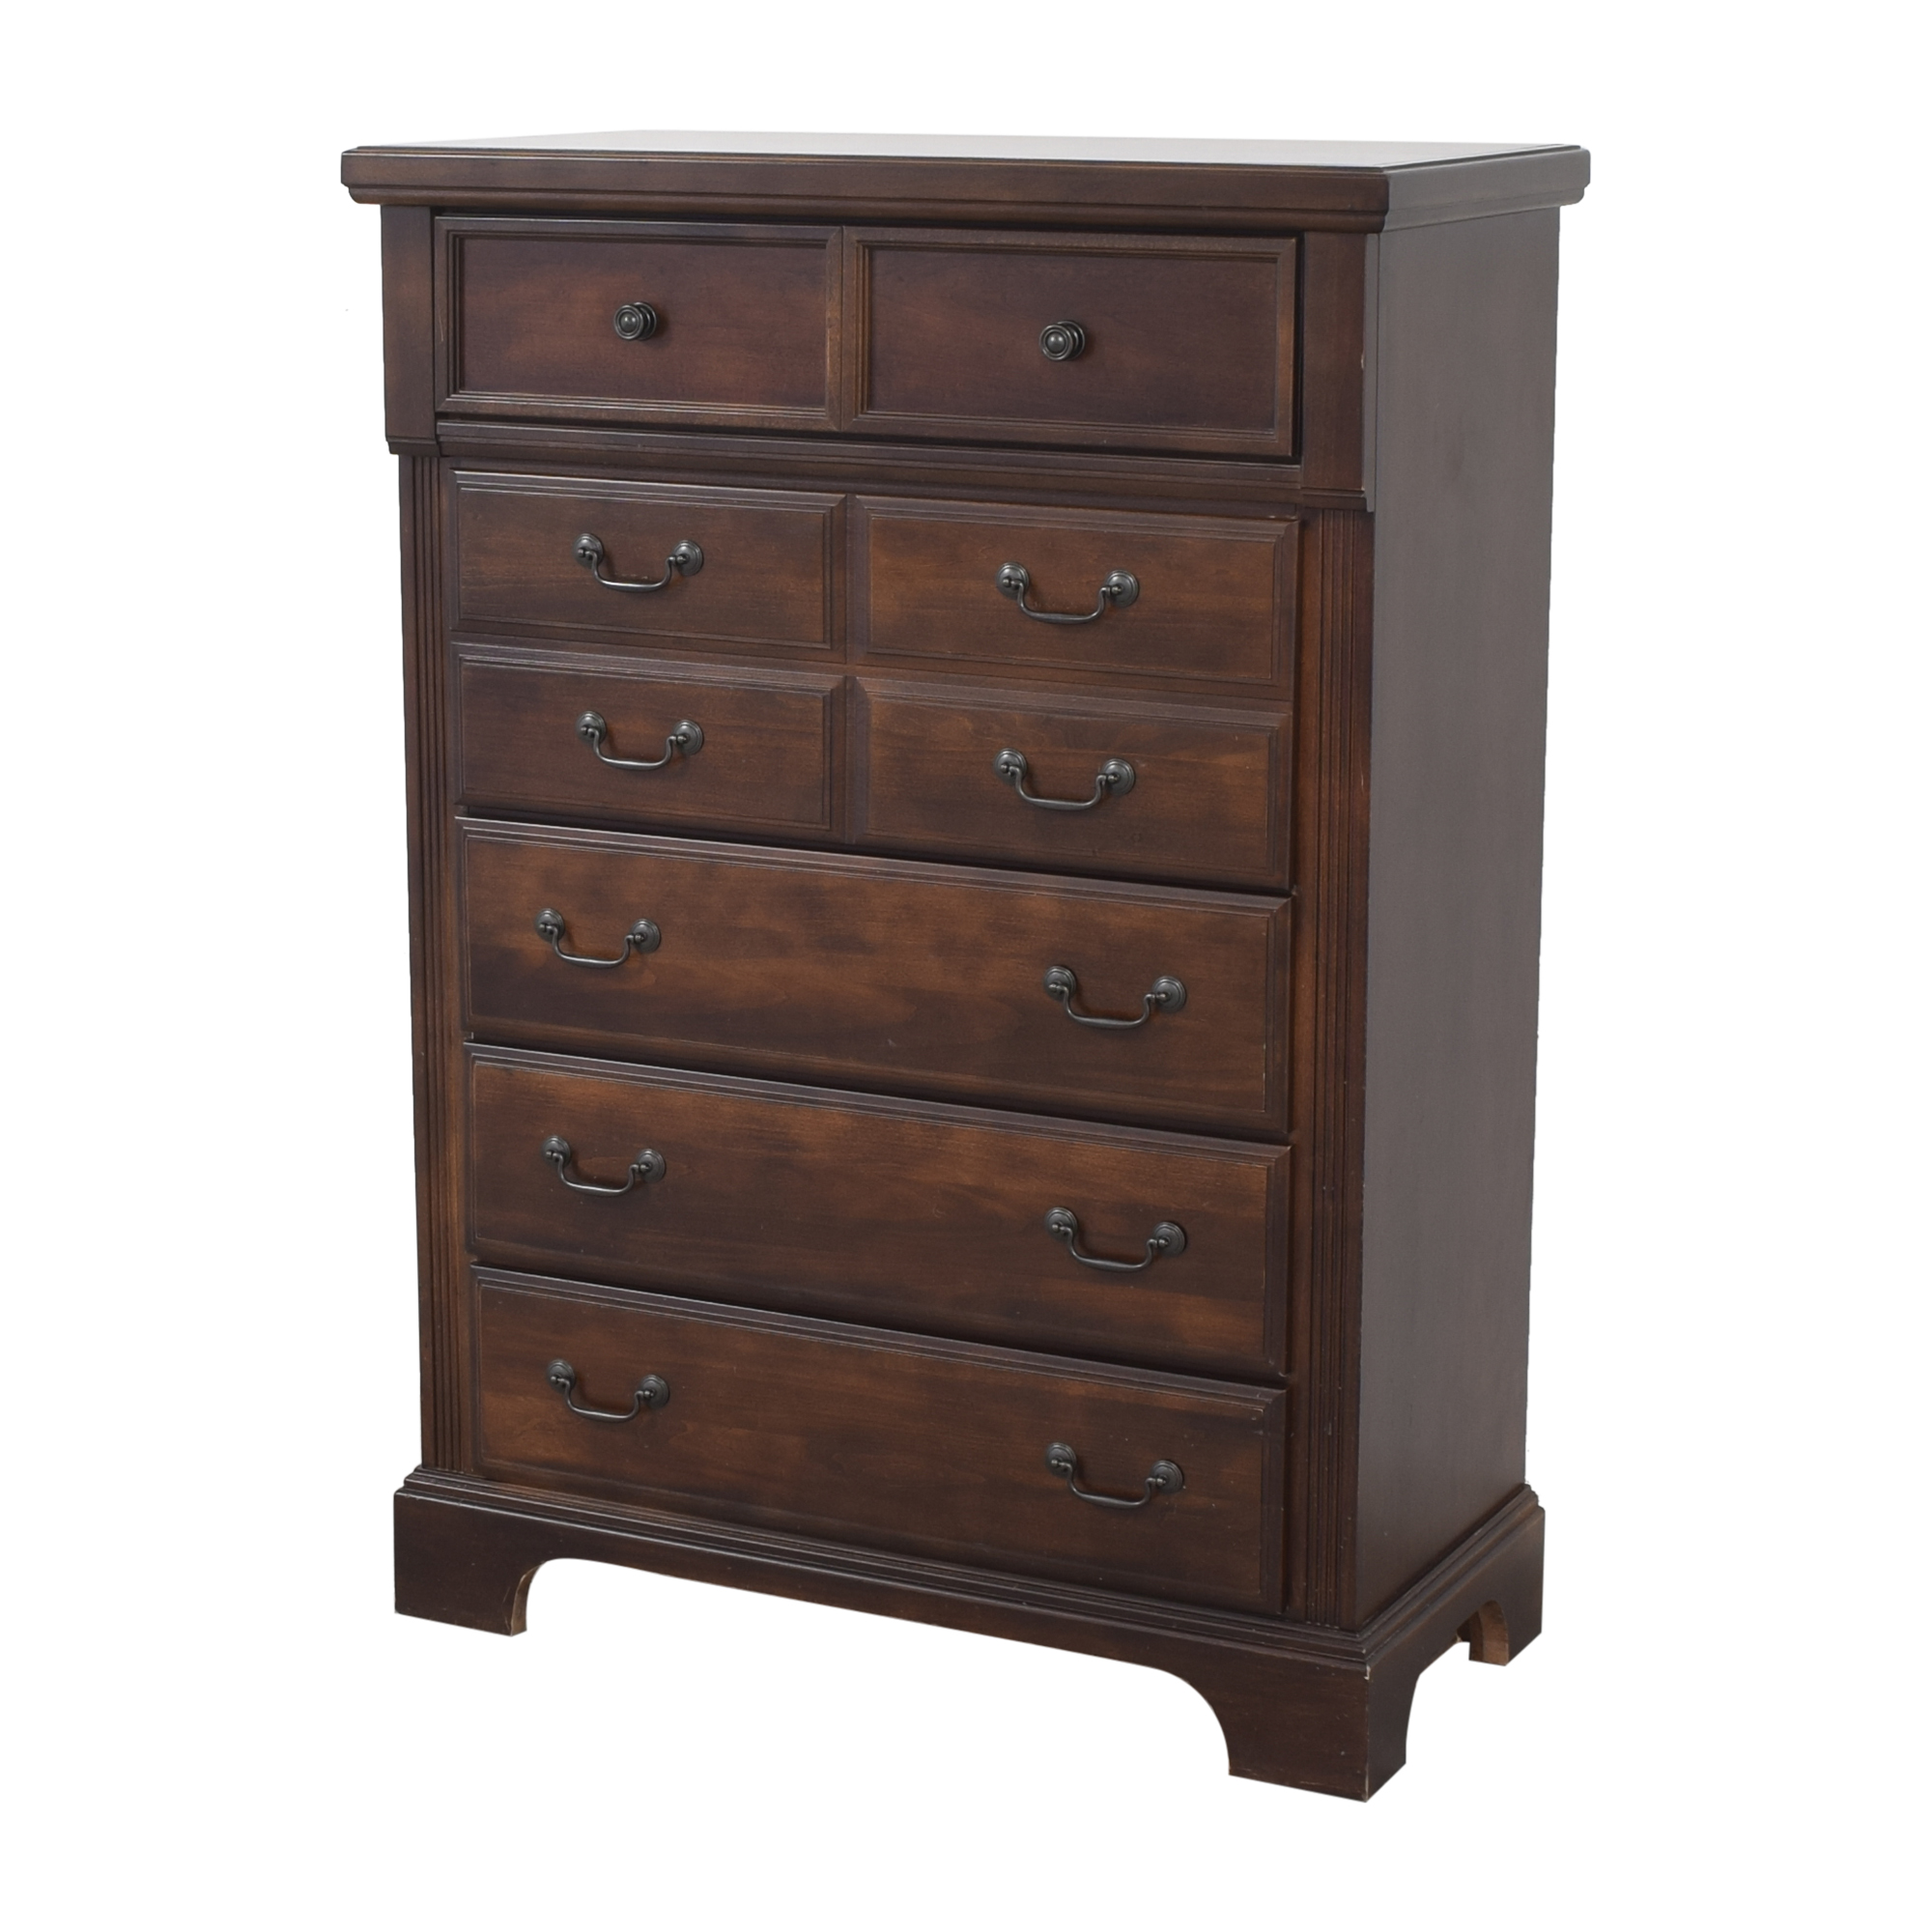 Vaughan-Bassett Vaughan-Bassett Five Drawer Tall Chest nyc